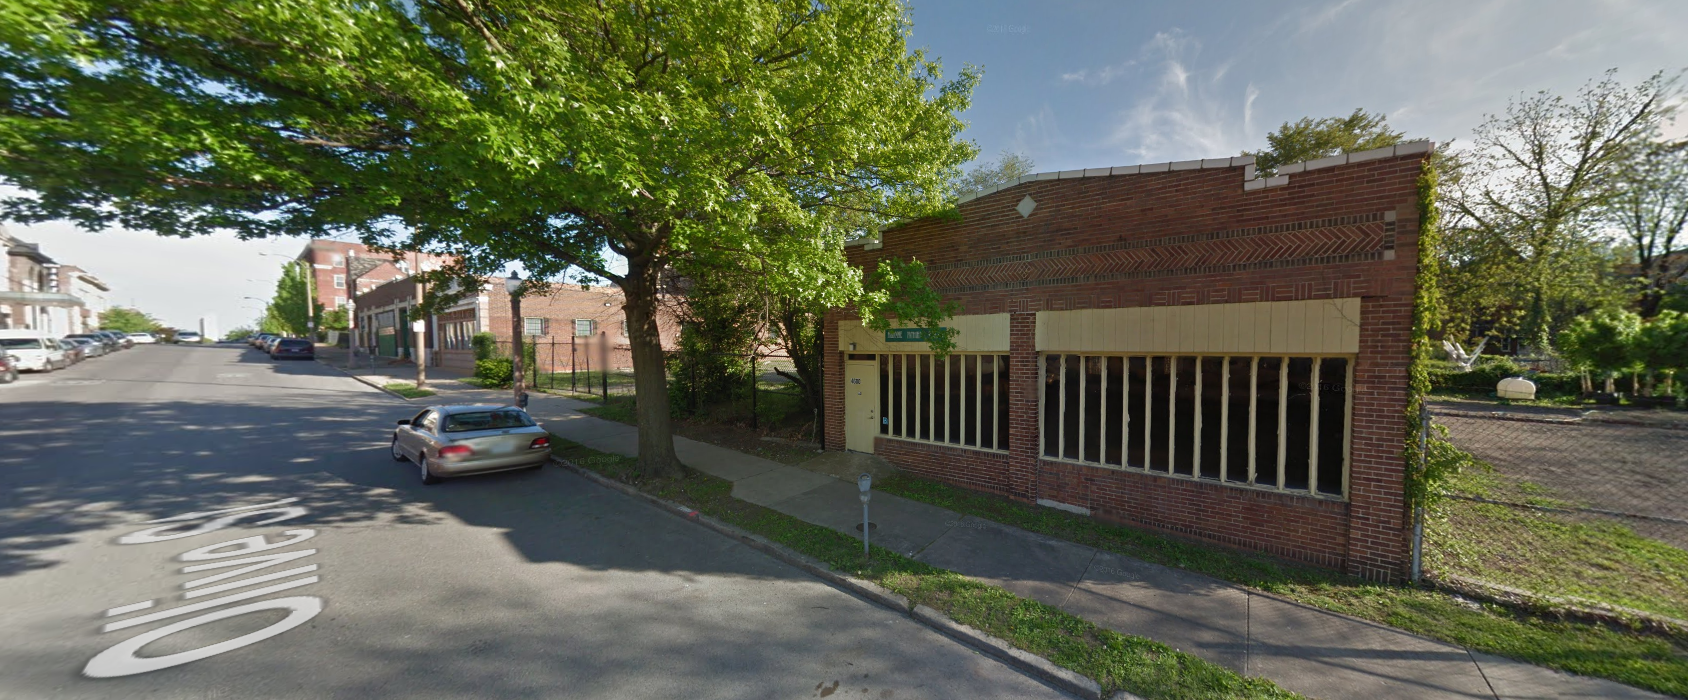 """$290,000 Permit Issued for """"Gift Shop"""" at Bowood Farms in CWE"""